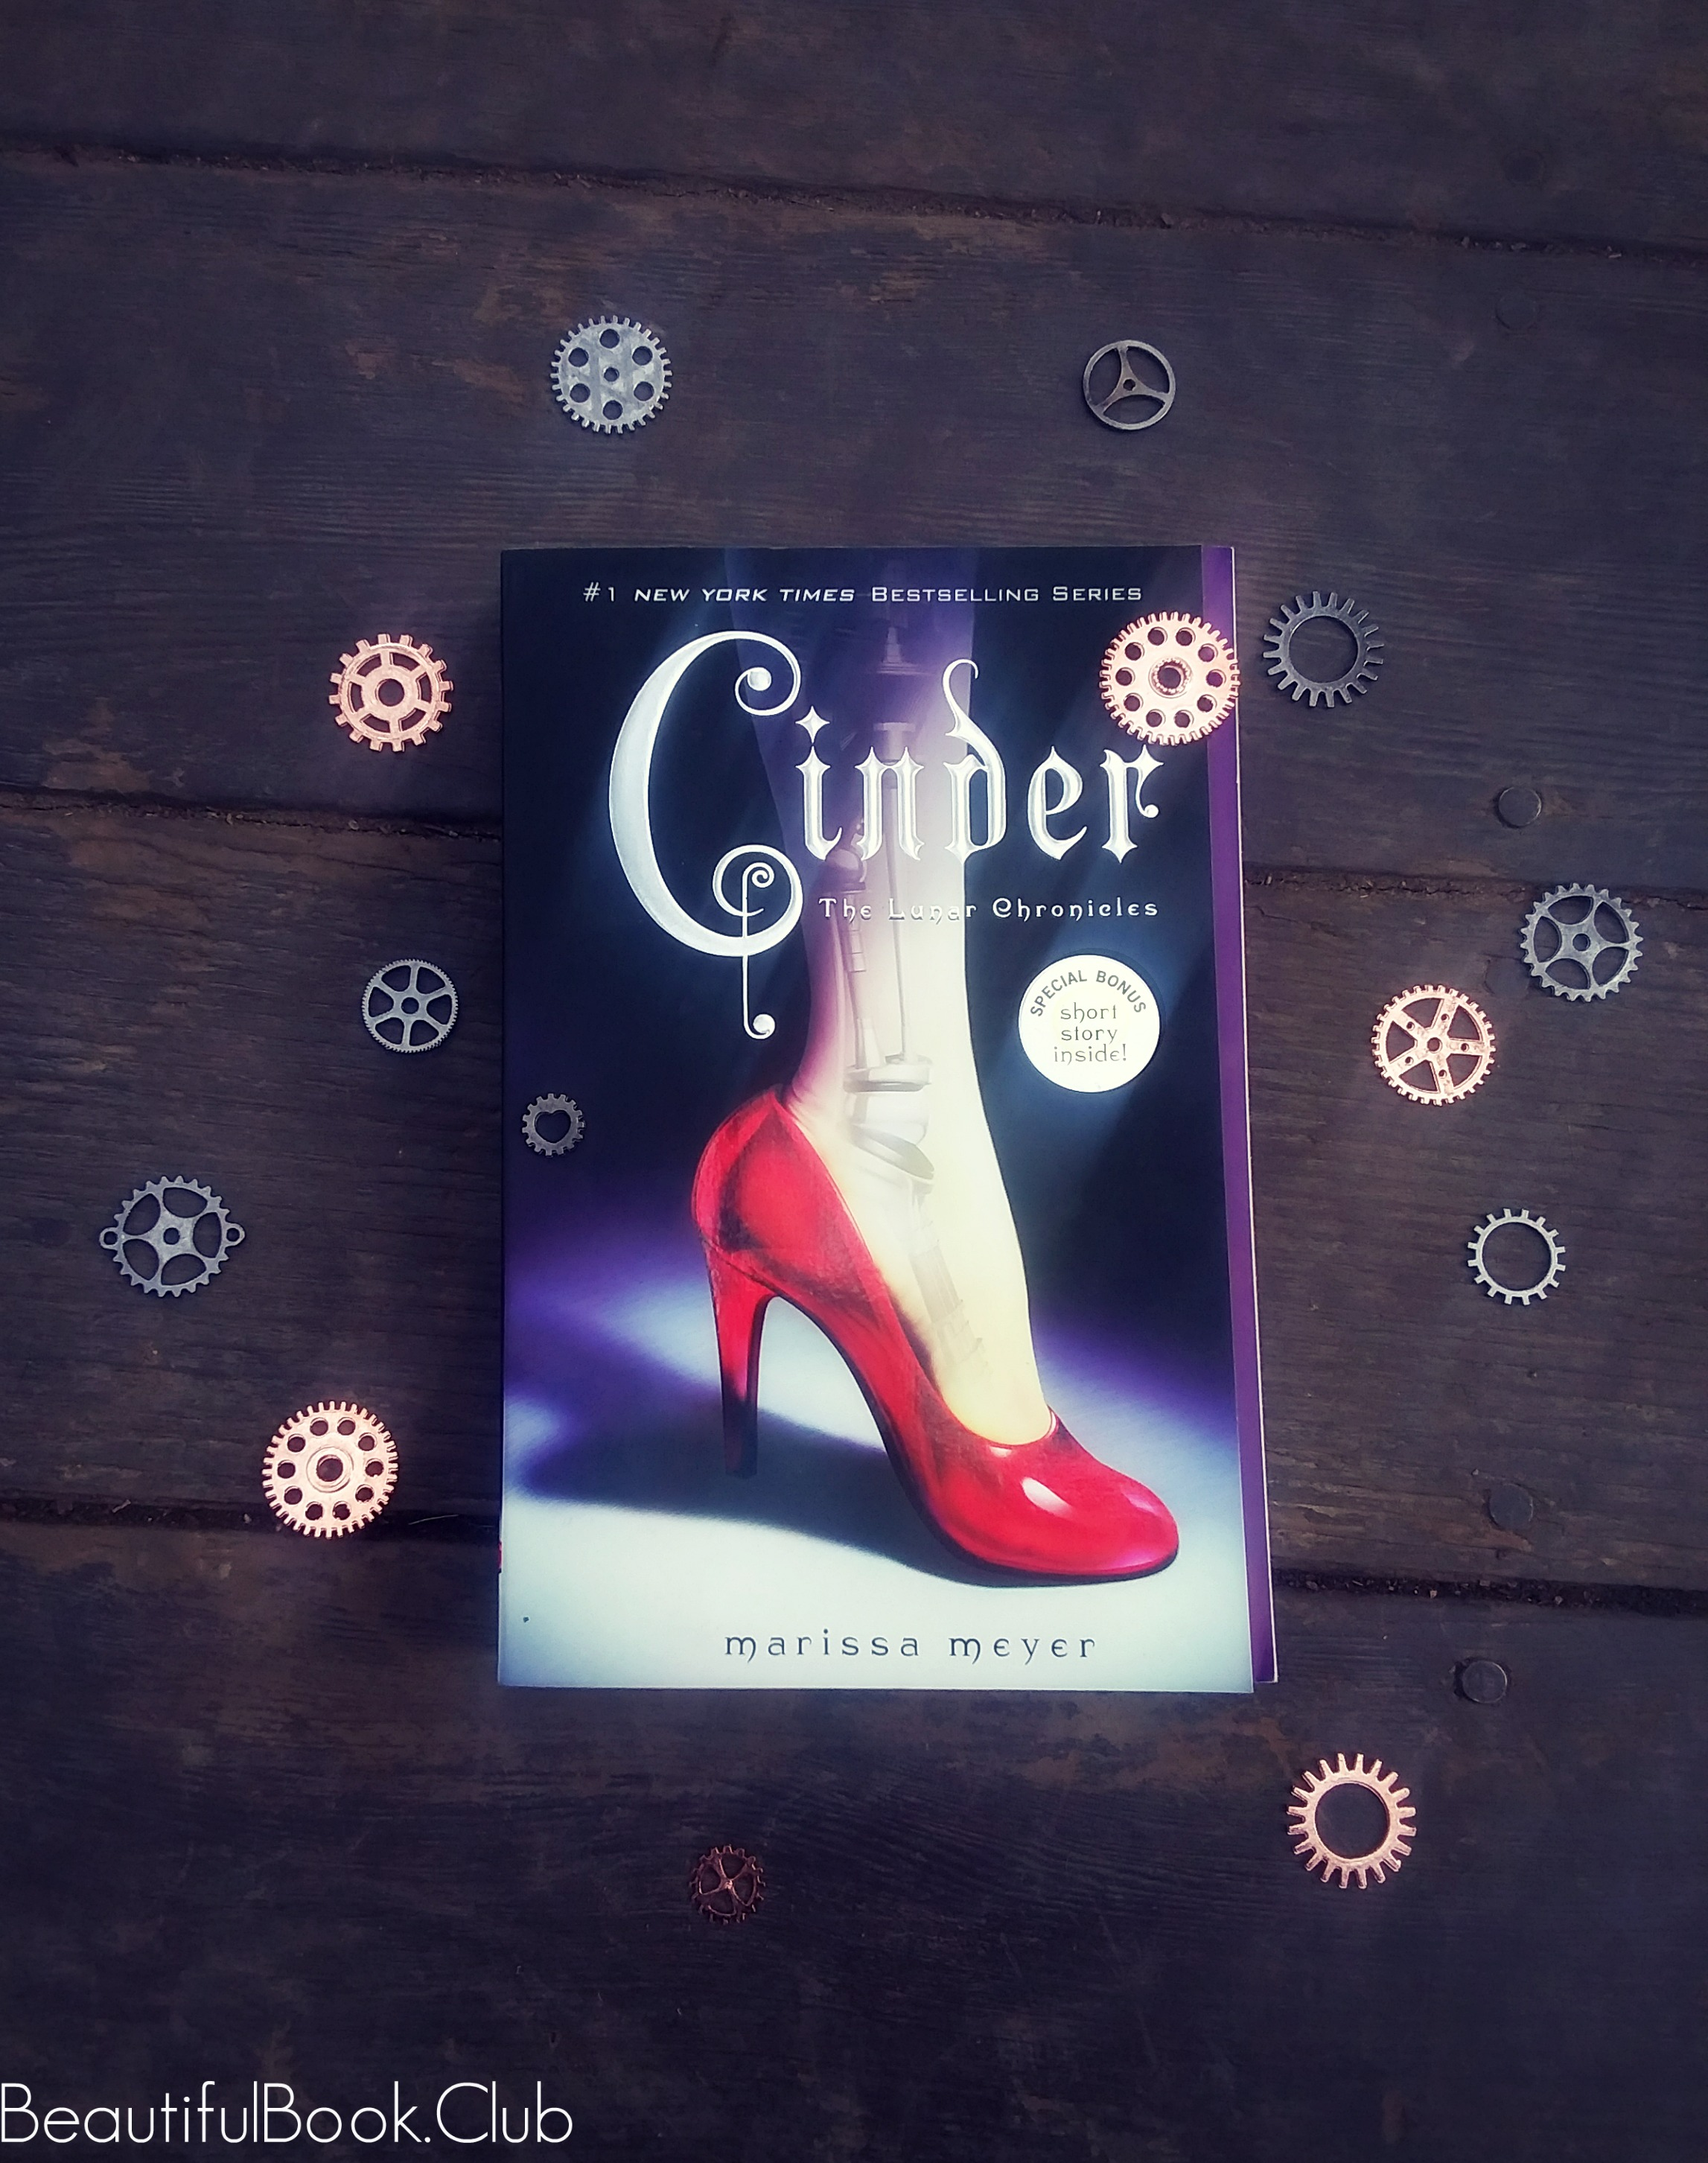 Cinder by Marissa Meyer front cover